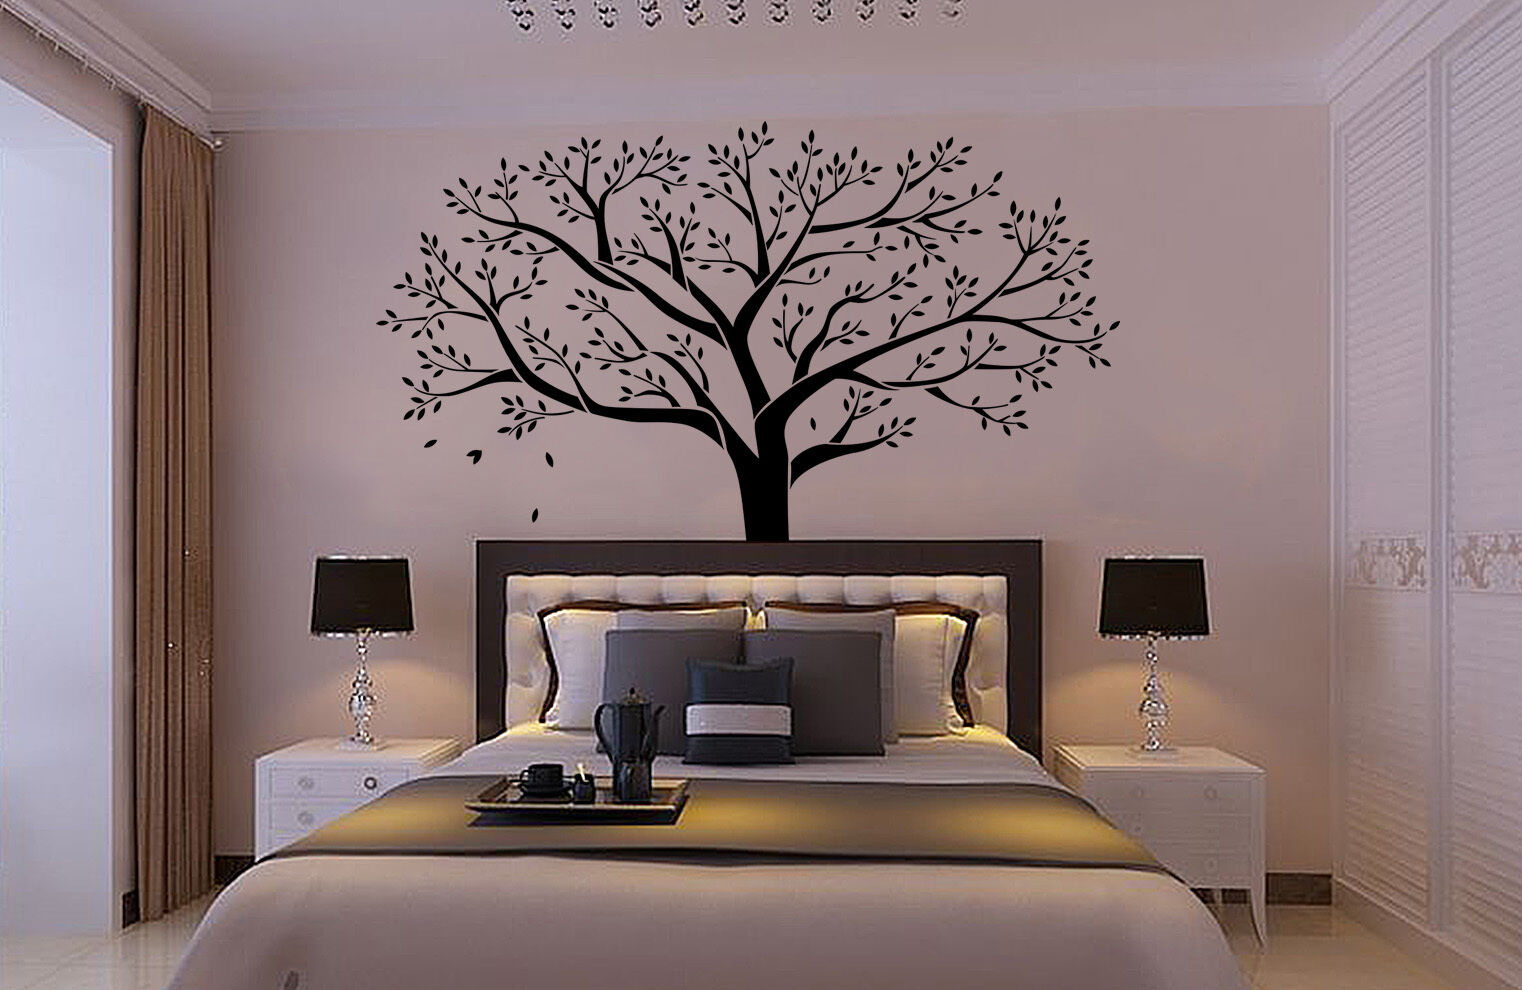 Enorme famiglia Tree Muro Adesivo Vinile Arte Decalcomanie casa stanza Decor UK sh58